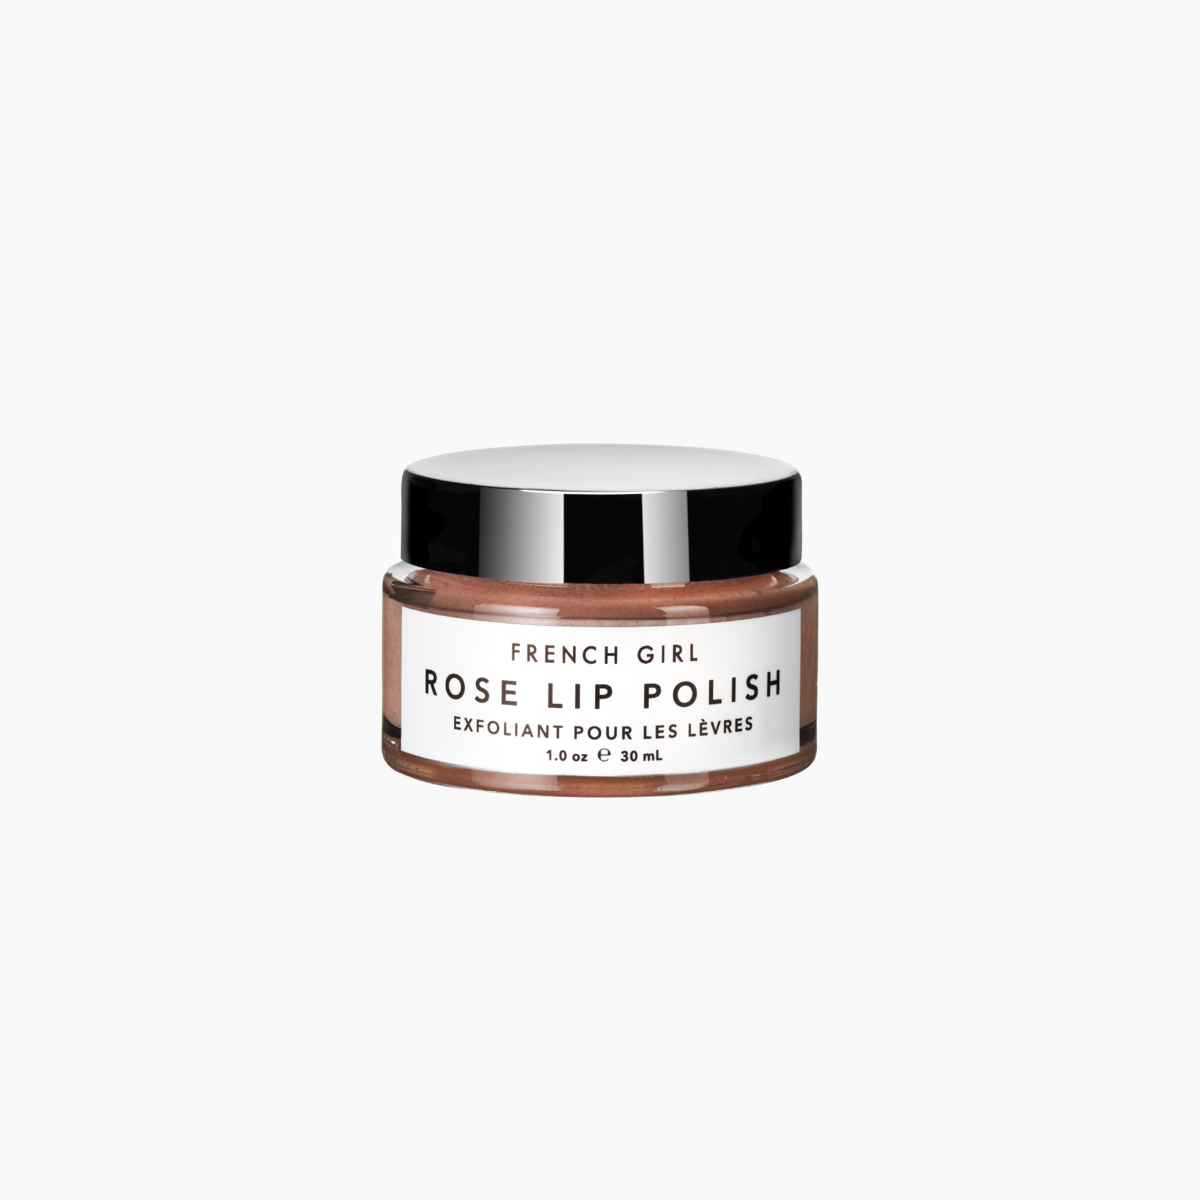 ROSE LIP POLISH by French Girl